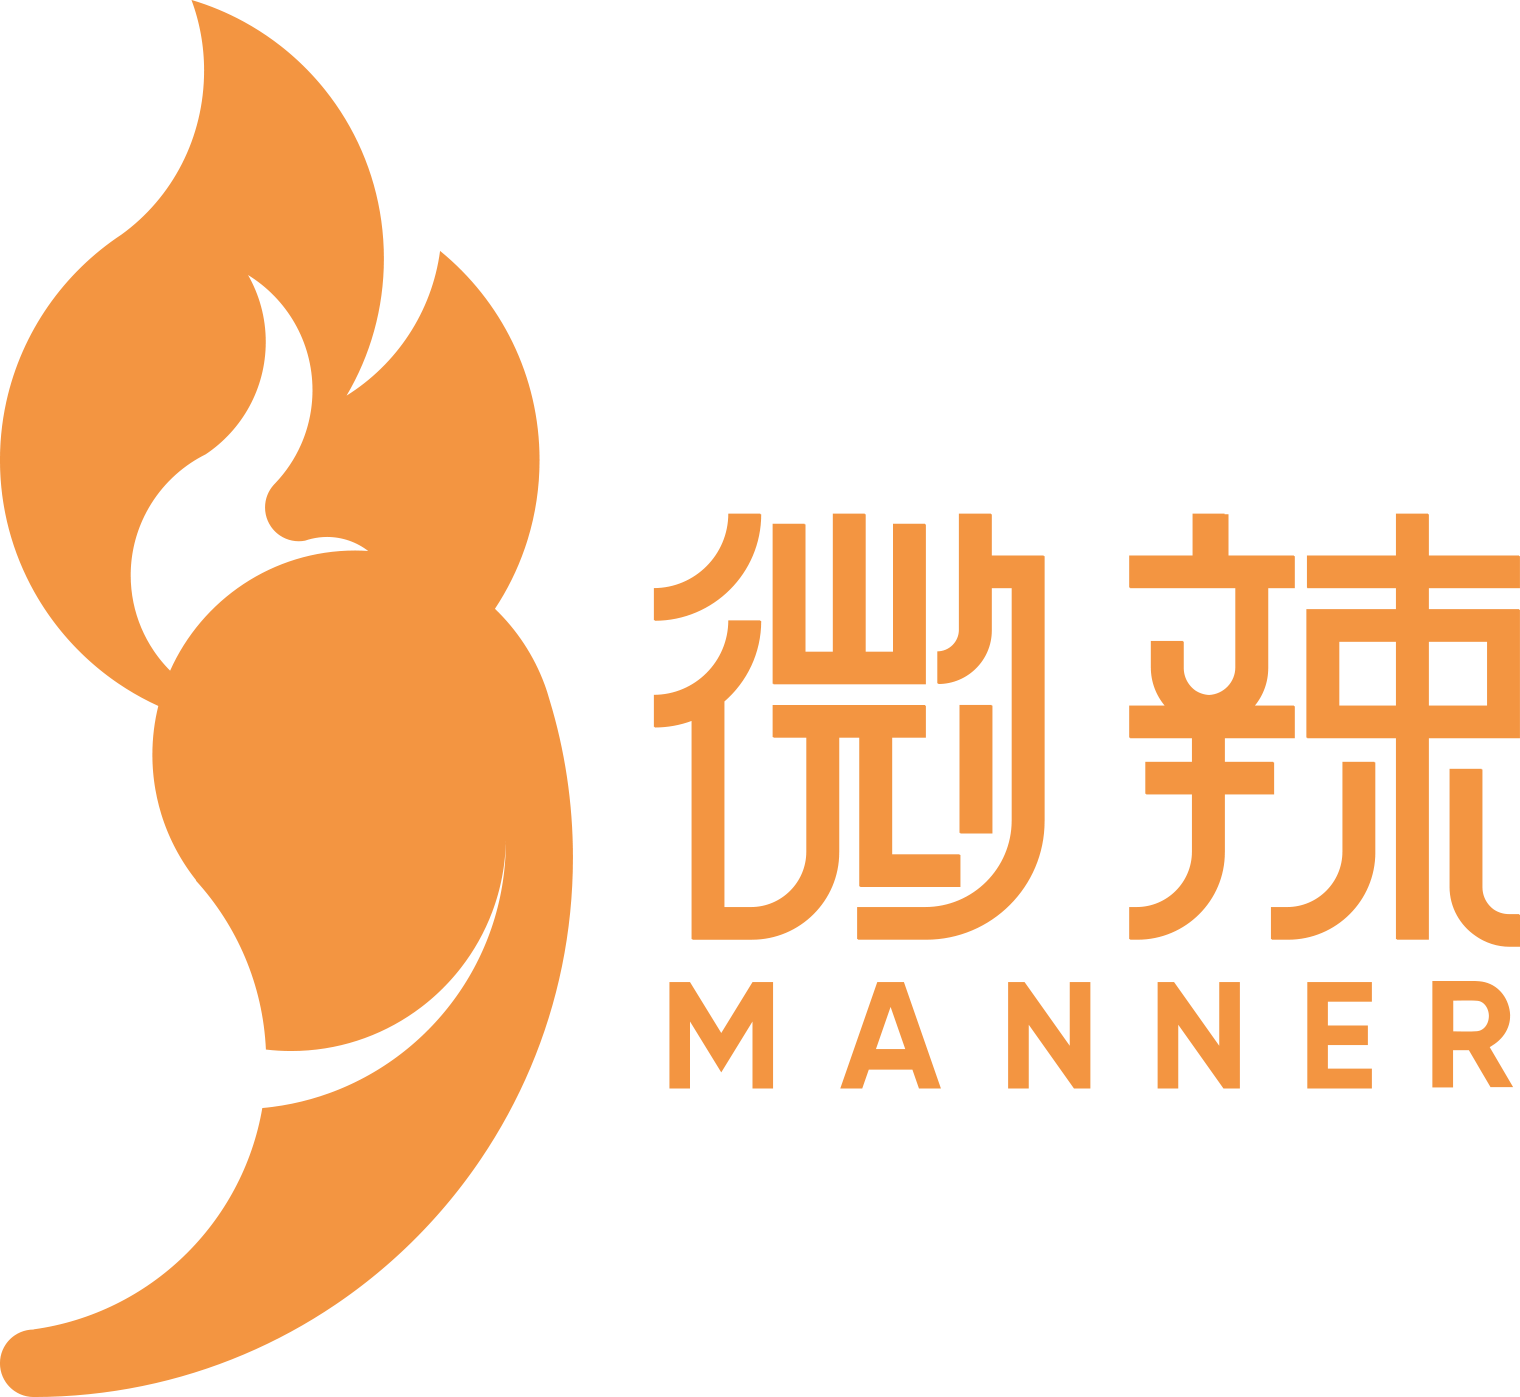 mannerlogo.png?mtime=20180814075815